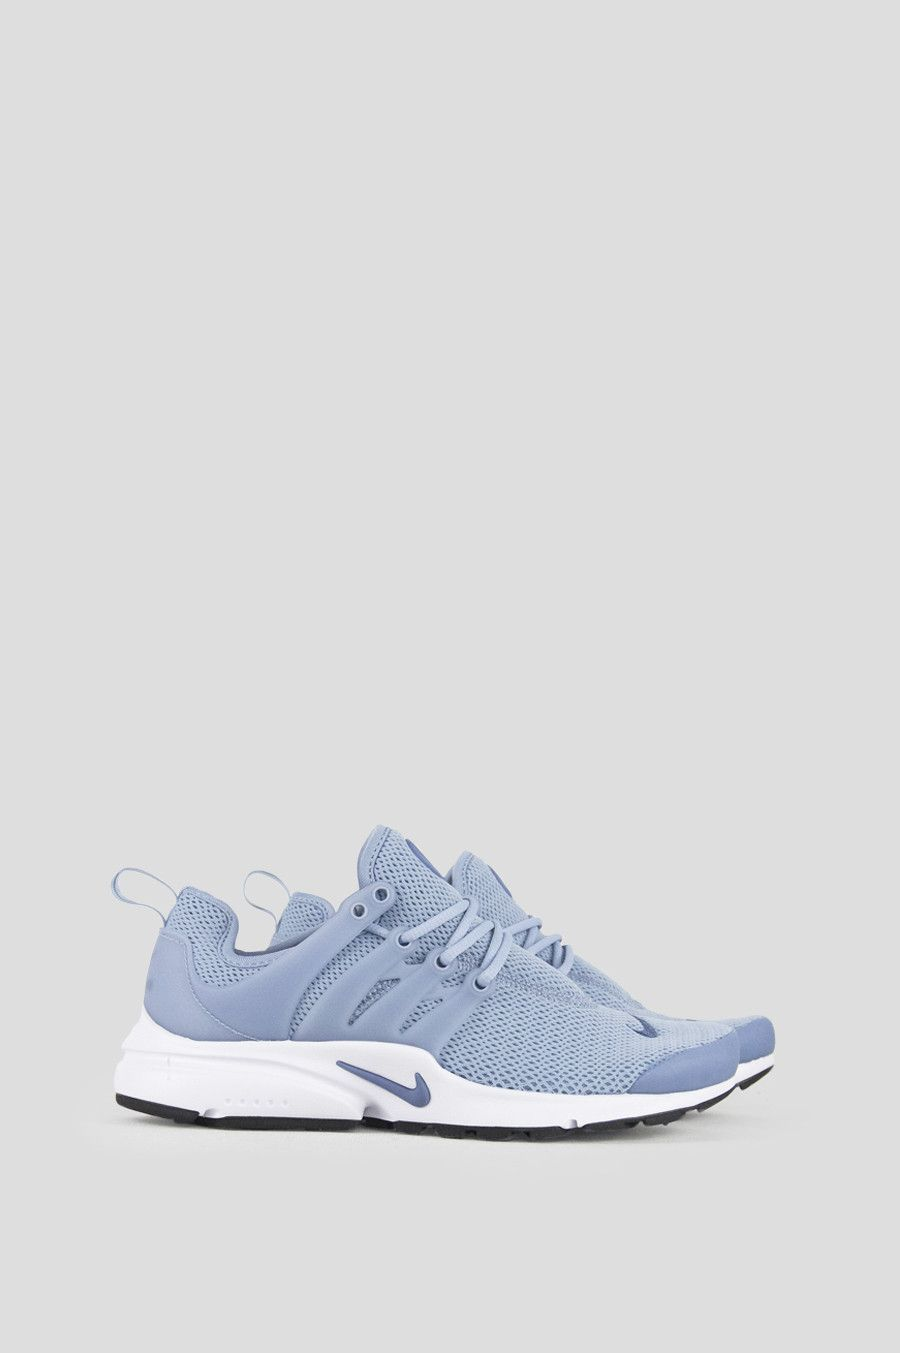 new arrival 04c7b dc029 The Nike Air Presto Women s Shoe is inspired by the comfort and minimalism  of a classic T-shirt for lightweight everyday comfort. - Product Code   878068-400 ...